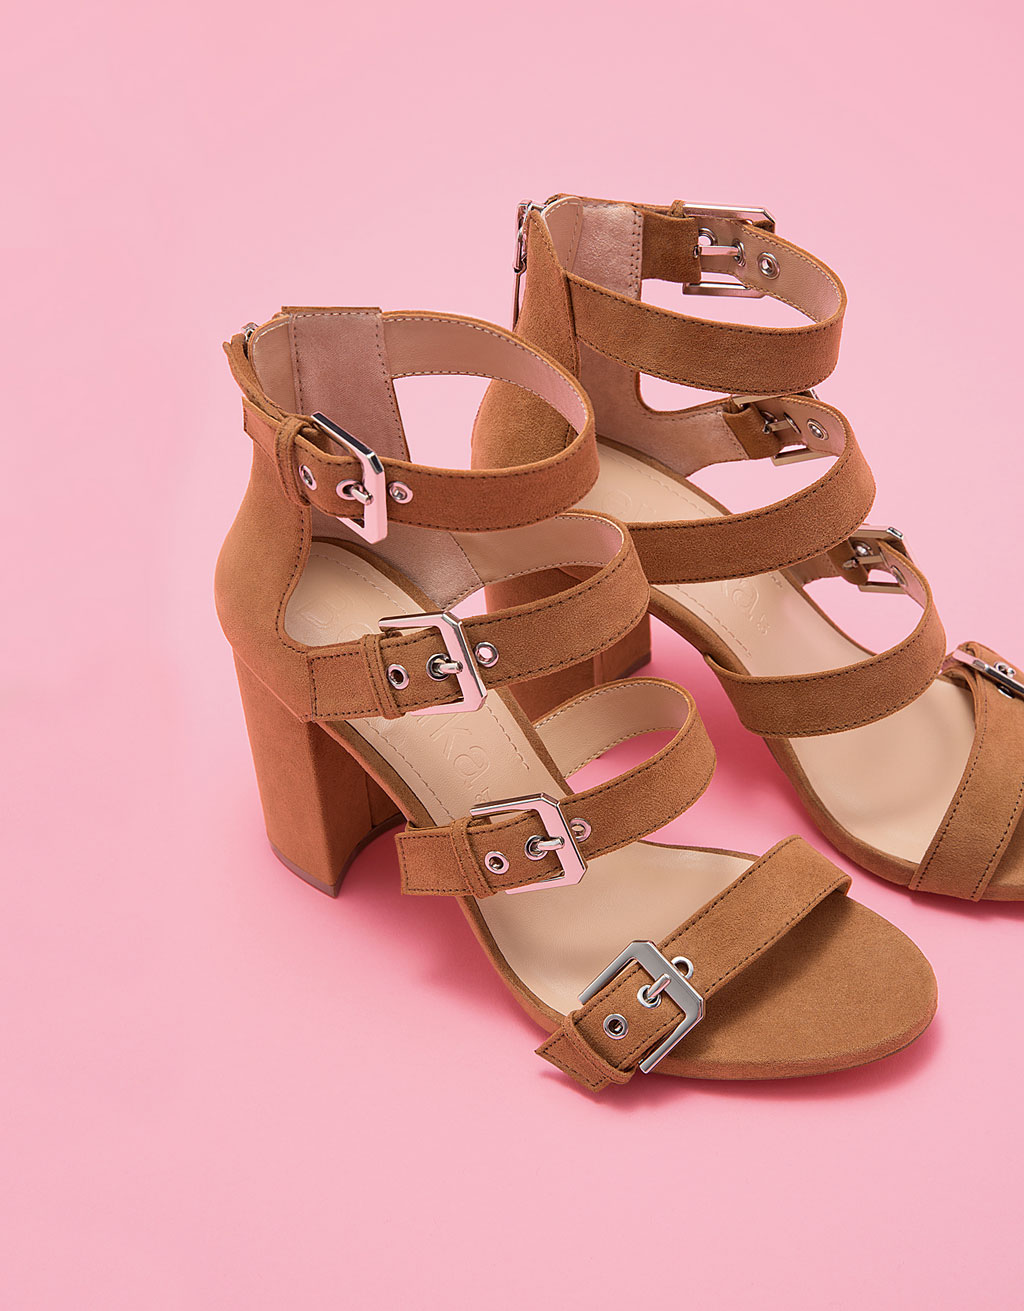 Block high heel sandals with straps and buckles